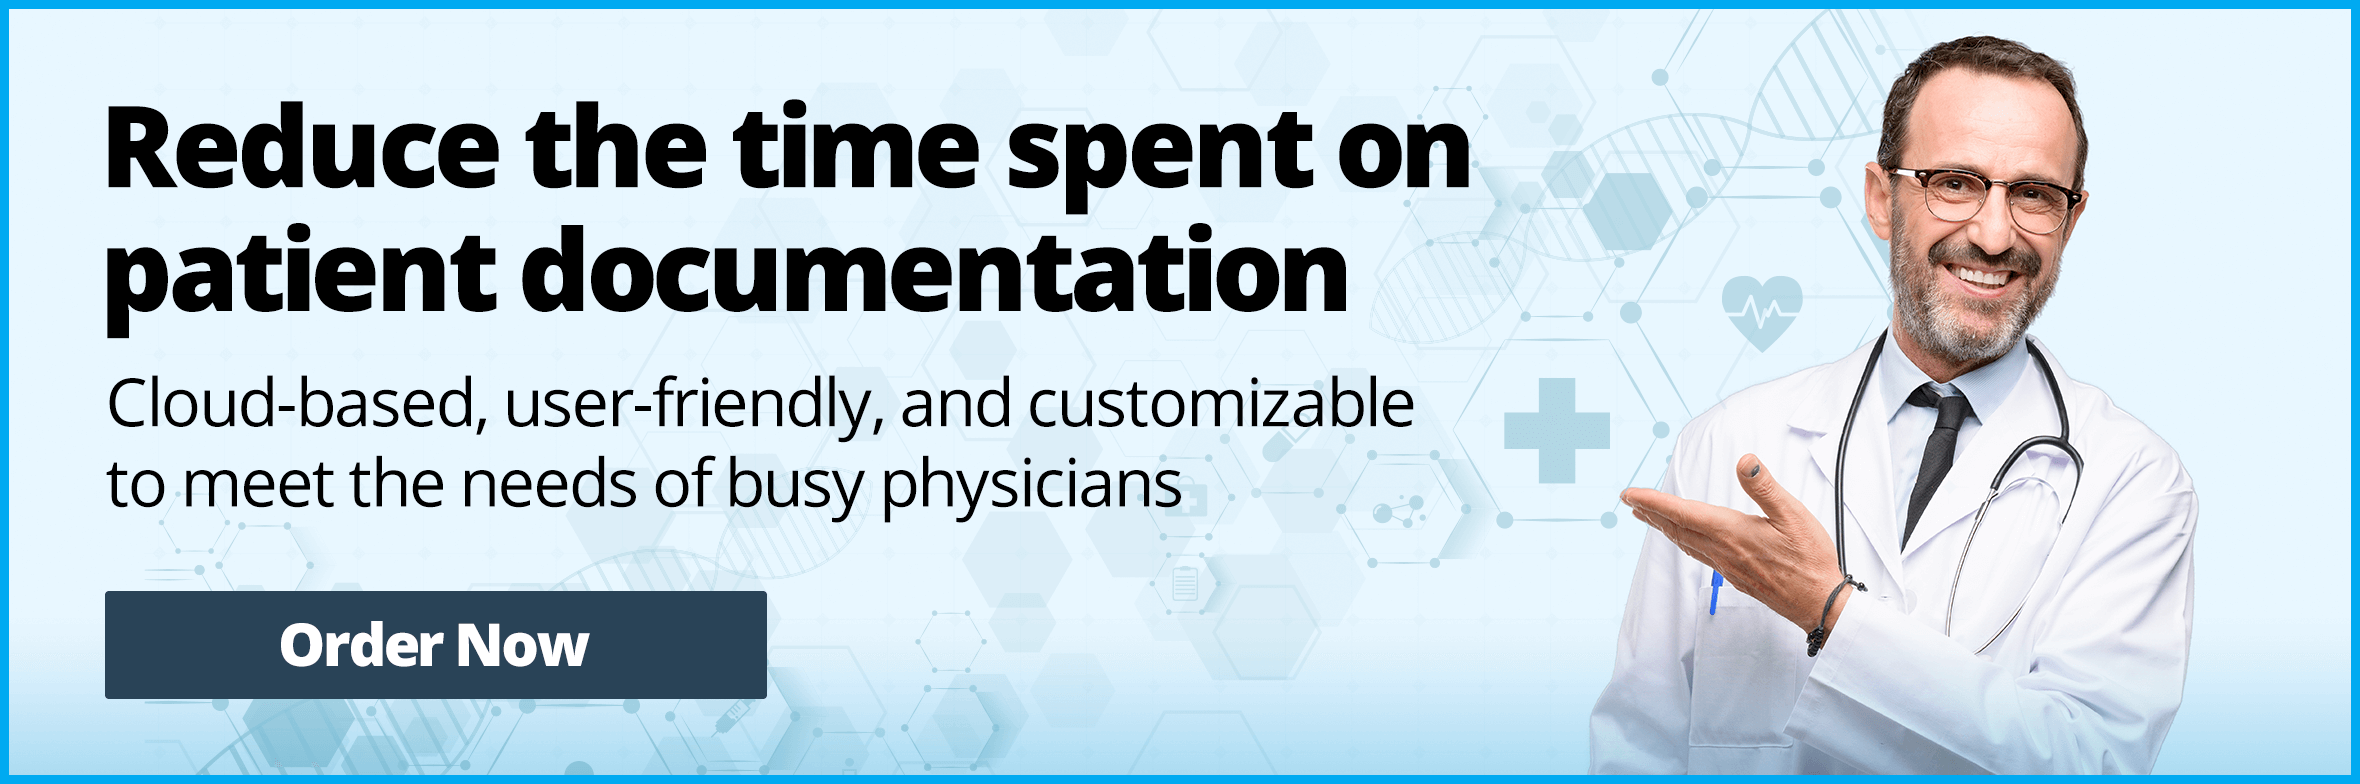 Reduce the time spent on patient documentation. Cloud-based, user-friendly, and customizable to meet the needs of busy physicians.